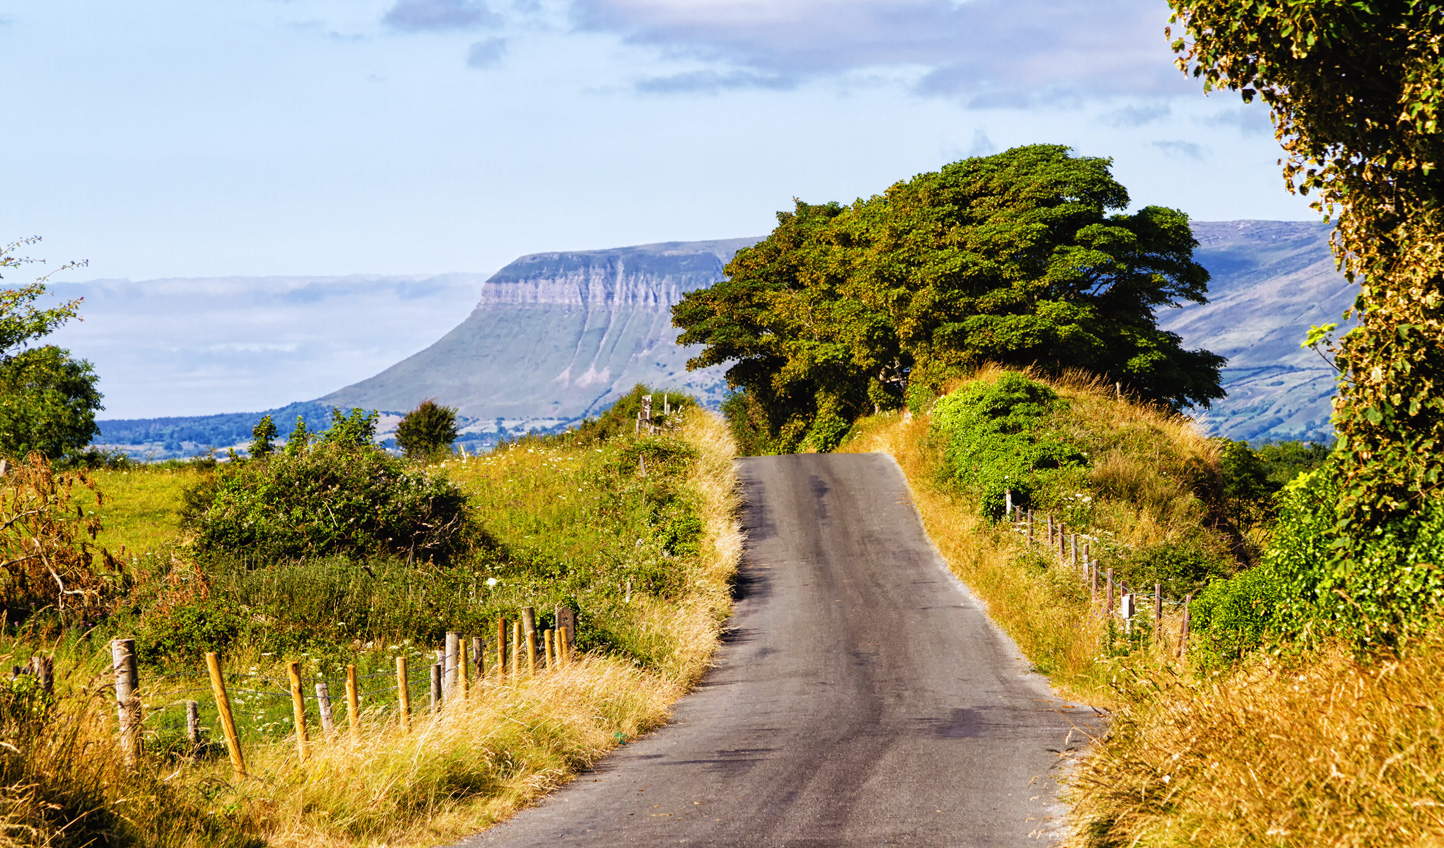 Head south from Donegal, passing in the shadow of Ben Bulben Mountain